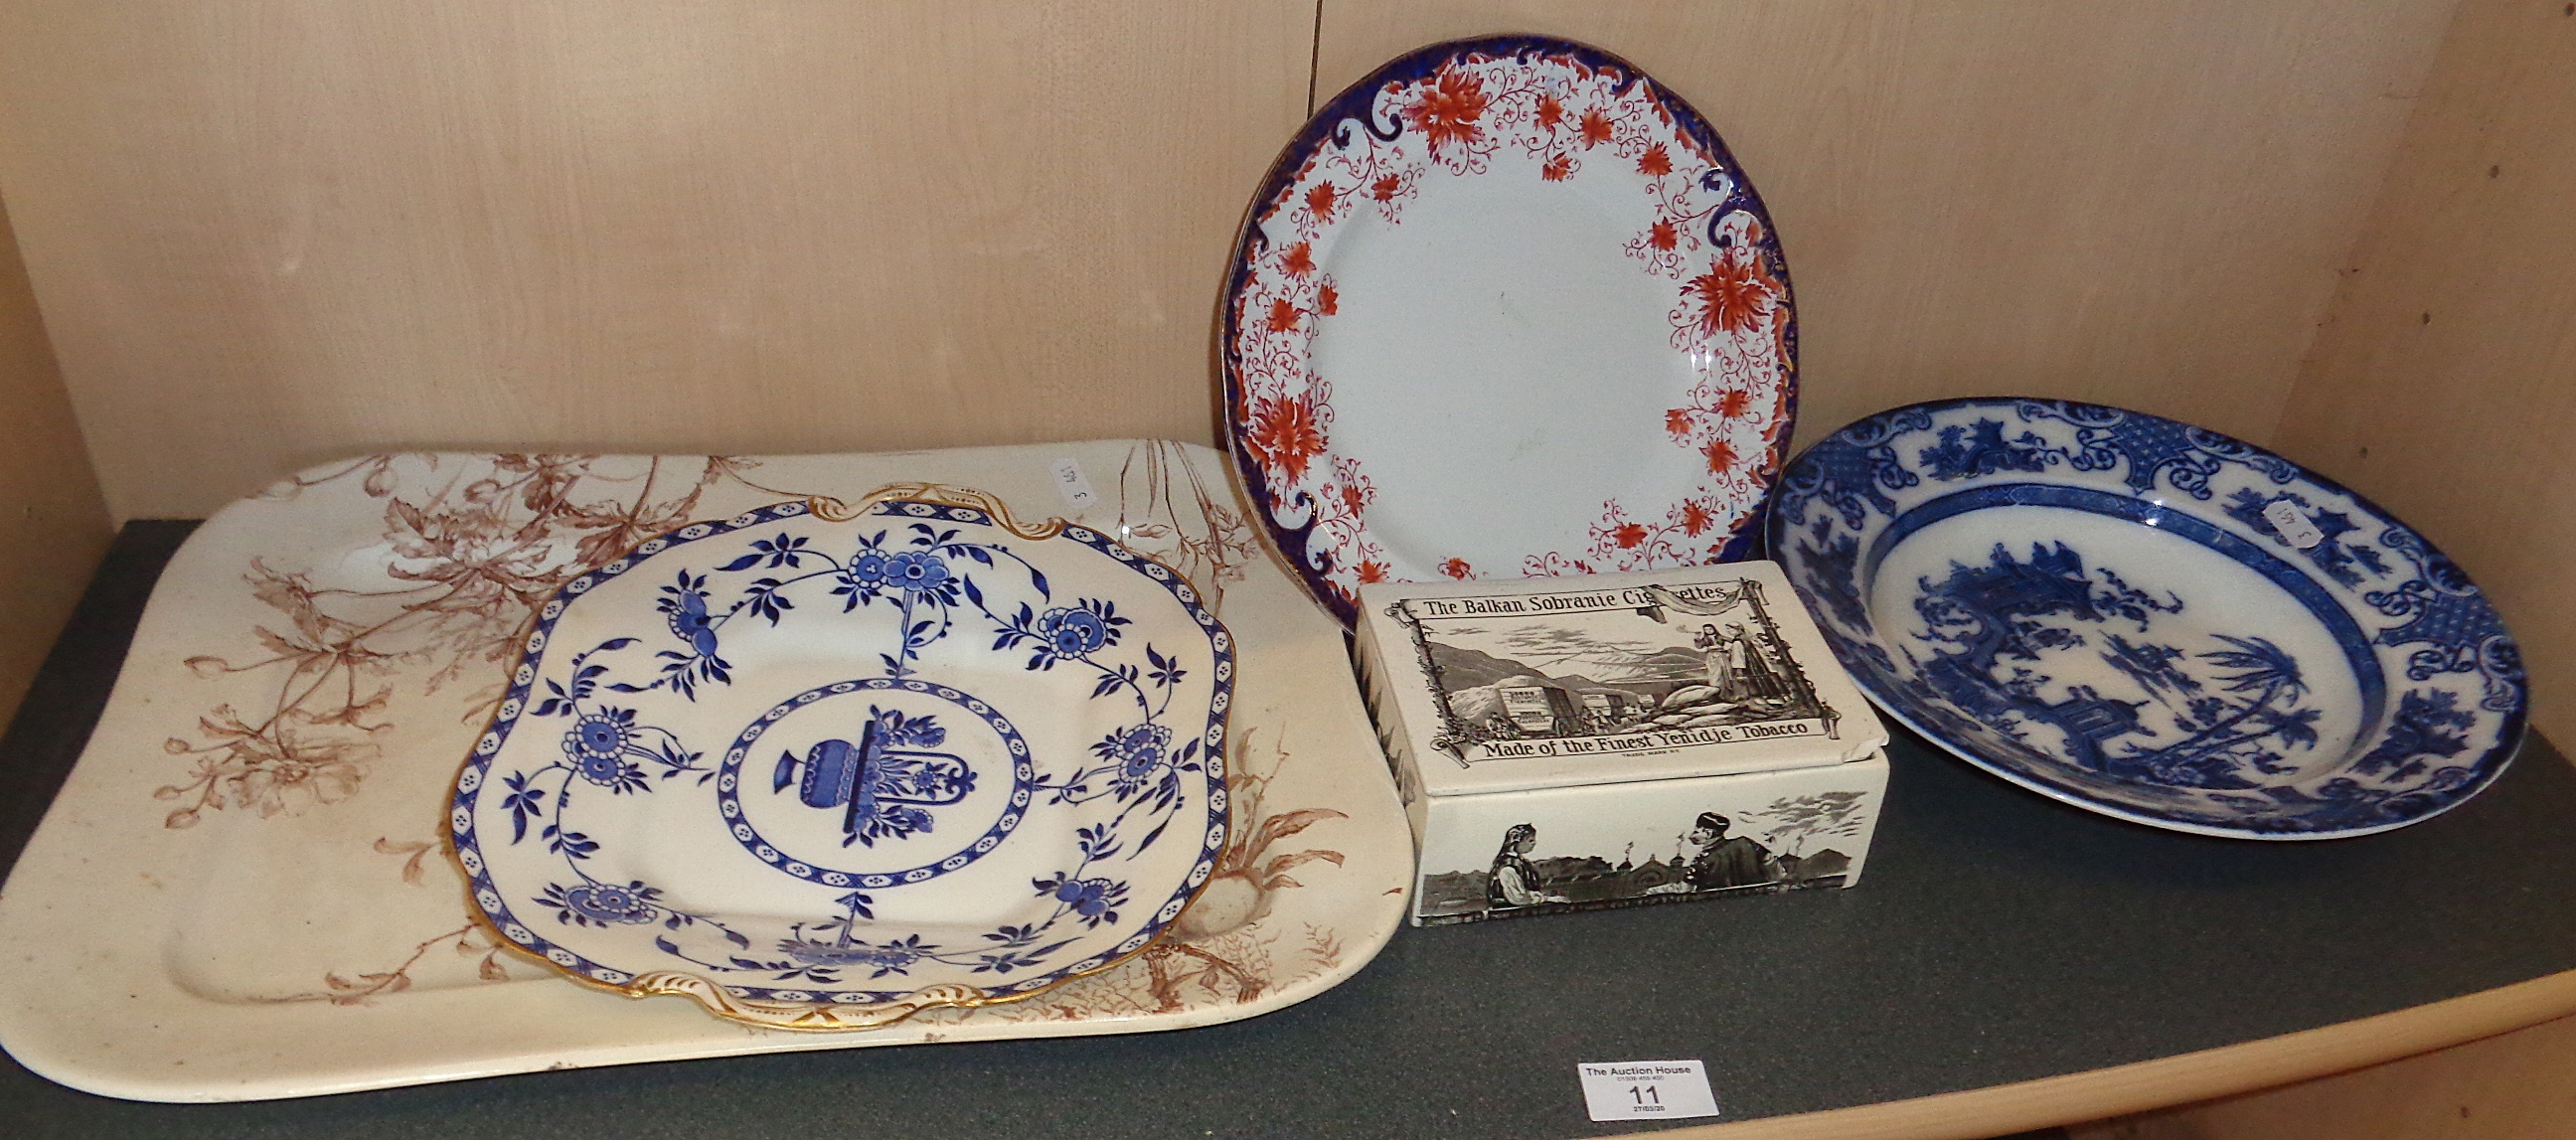 Lot 11 - A Victorian meat platter, three plates and a Balkan Sobranie transfer printed china cigarette box (